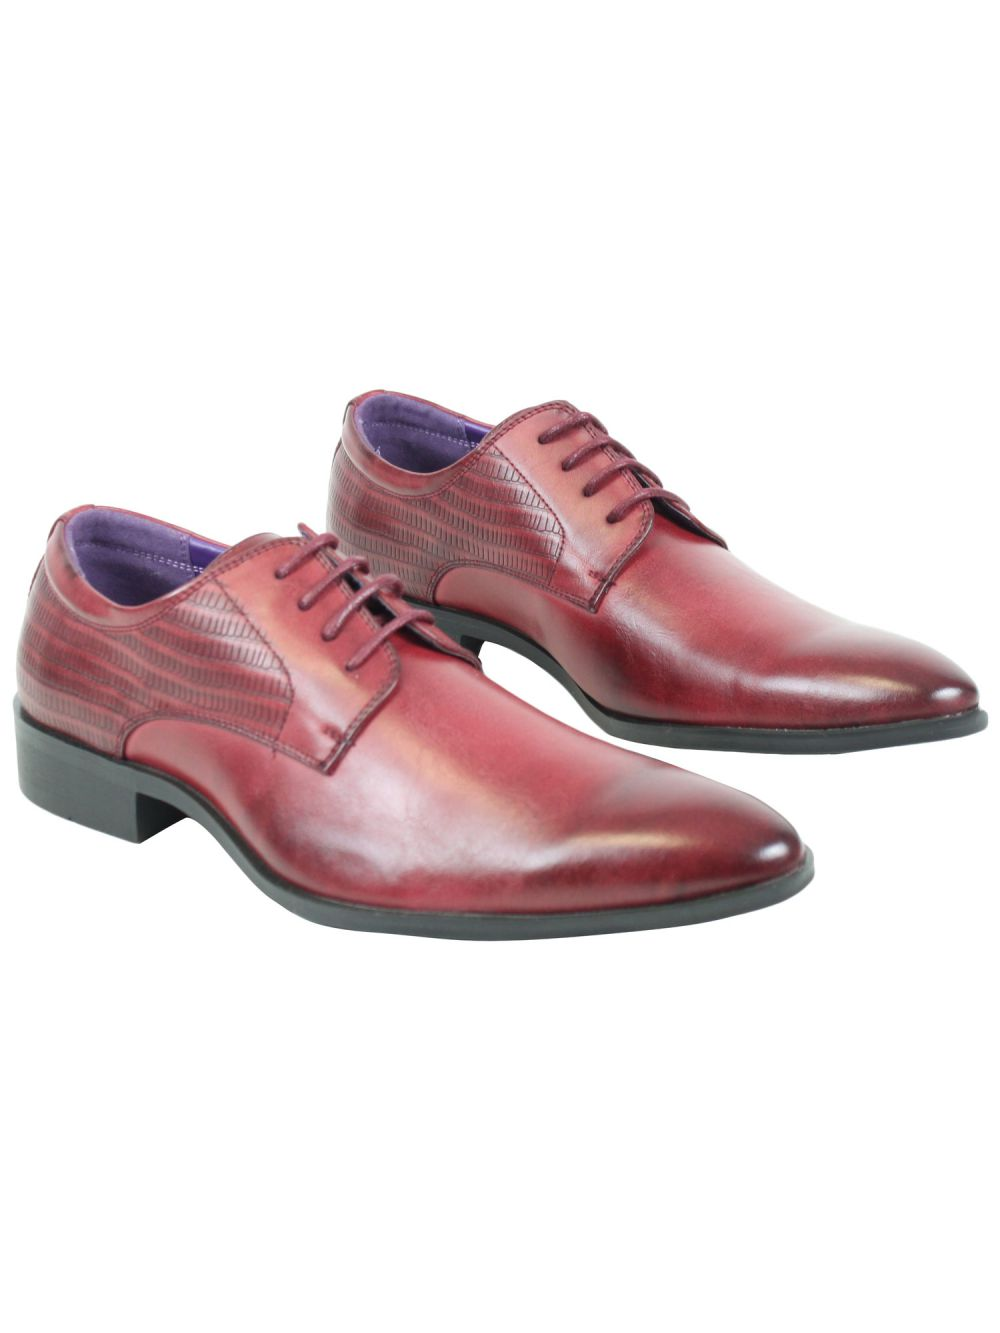 Chaussures ELO522